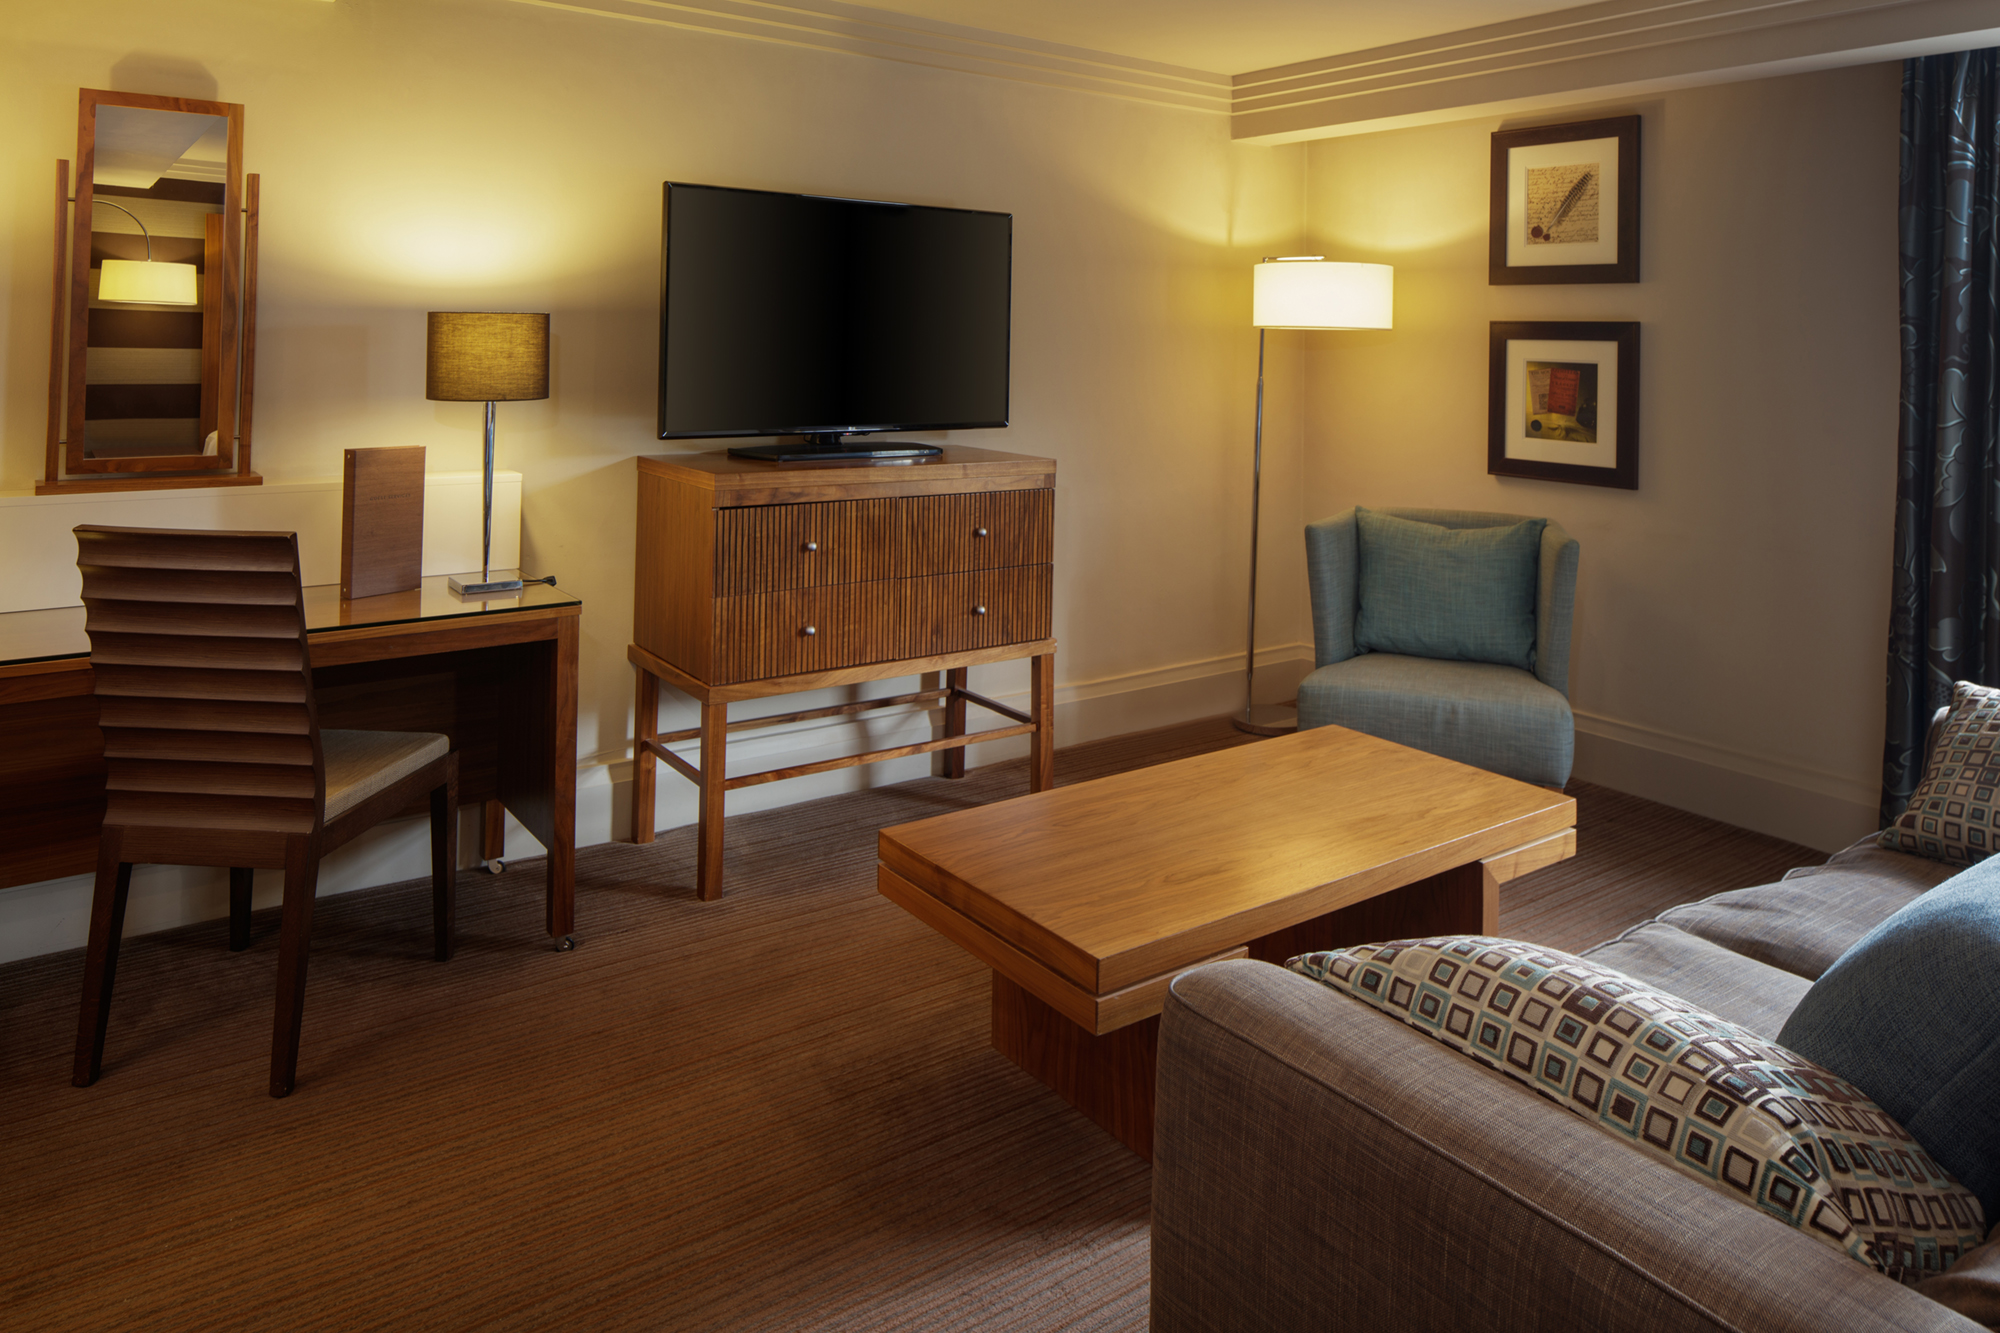 sofa and tv bedroom doubletree by hilton stratford-upon-avon